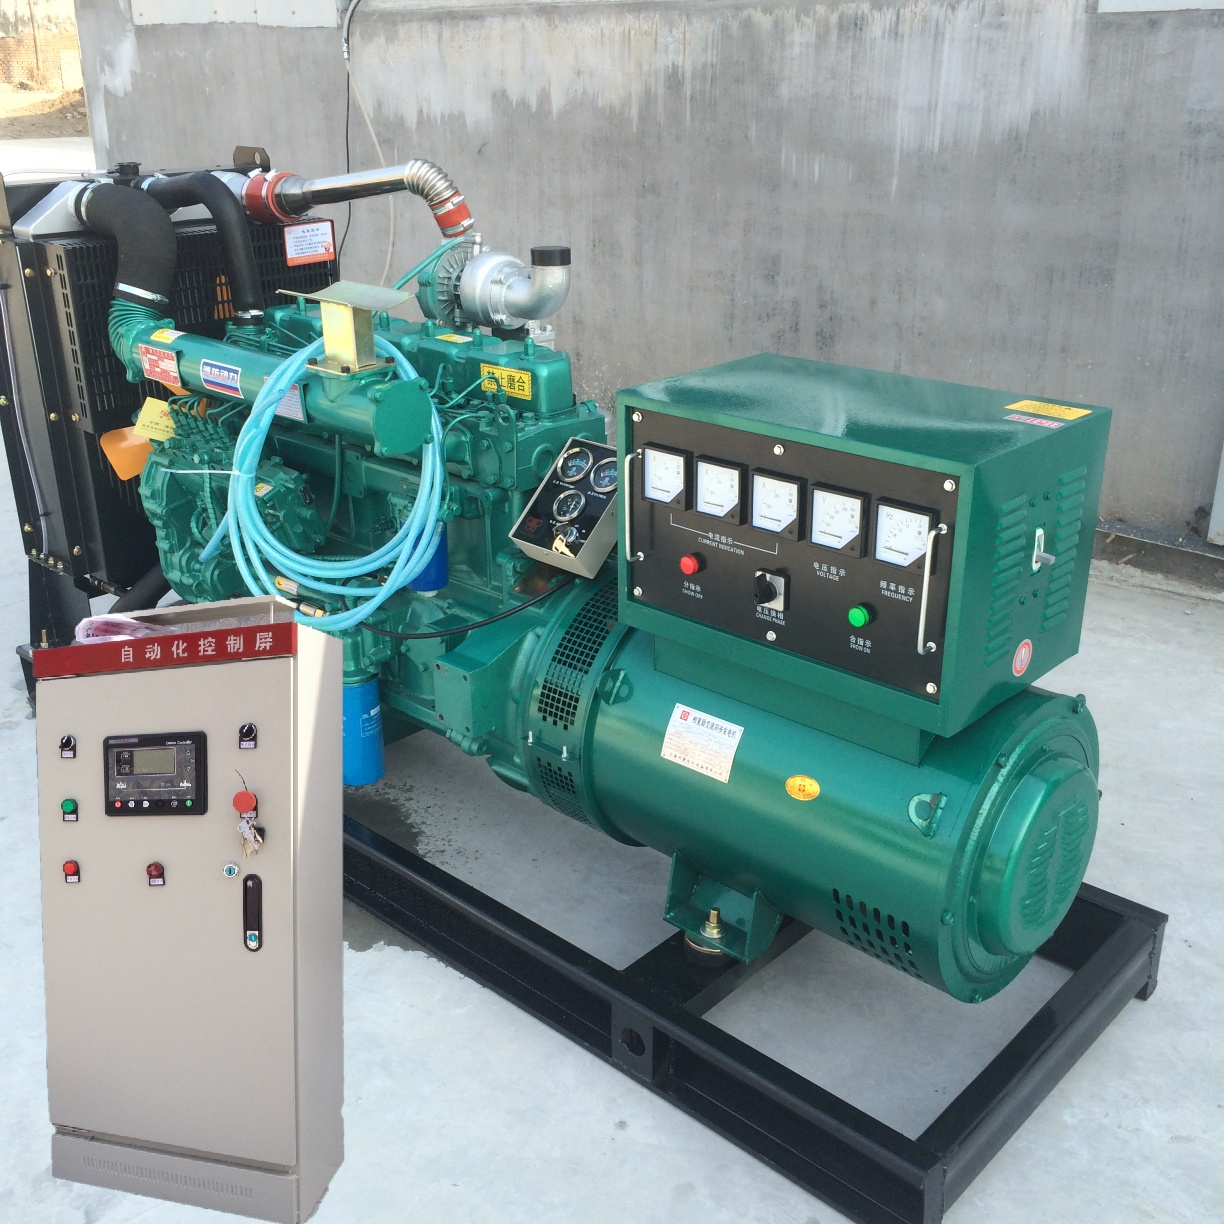 Weichai 150 kw diesel generating set can be equipped with static sound box, trailer, automation and other configurations, quality and cheap, welcome to buy